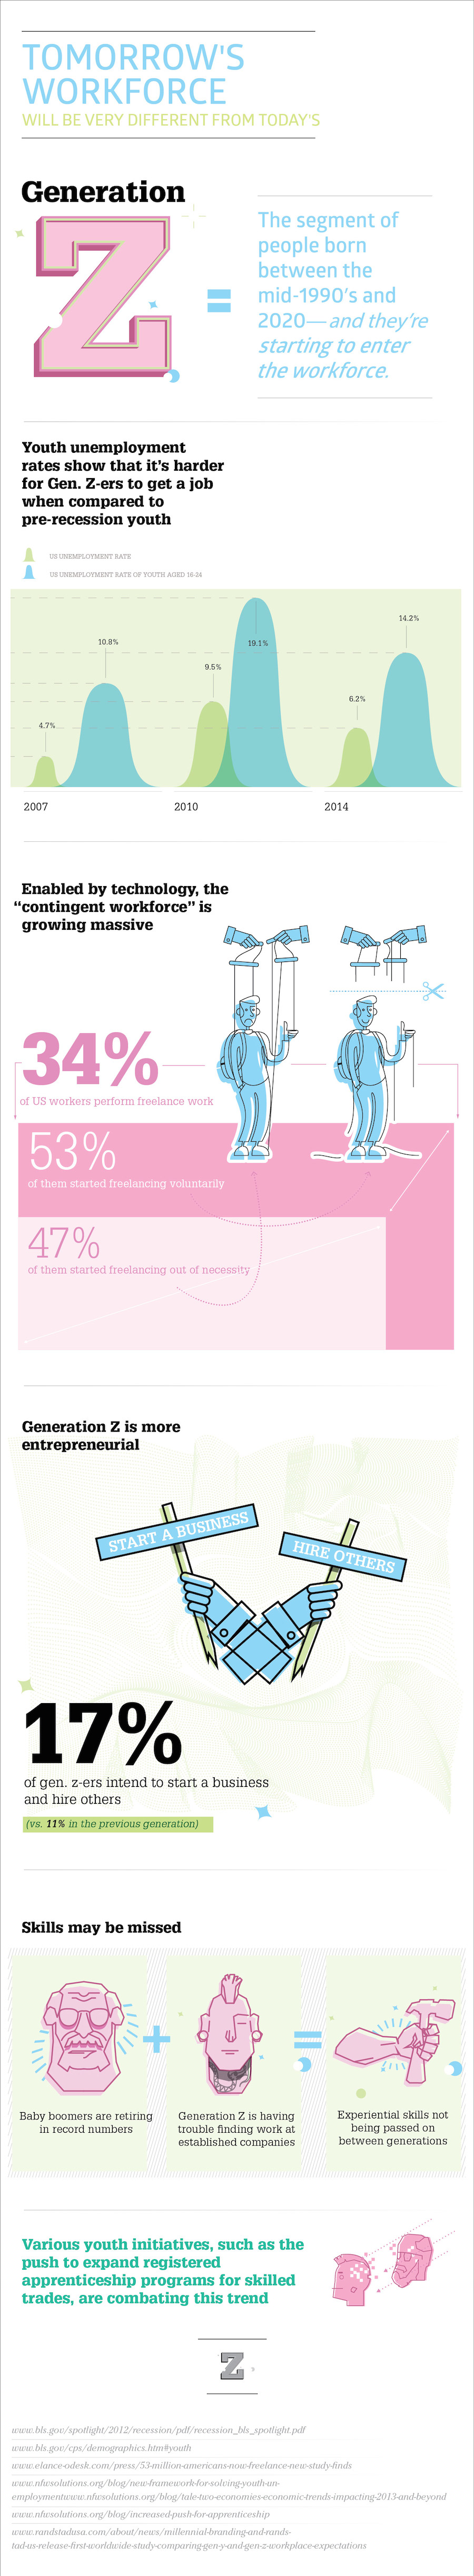 tomorrows workforce infographic